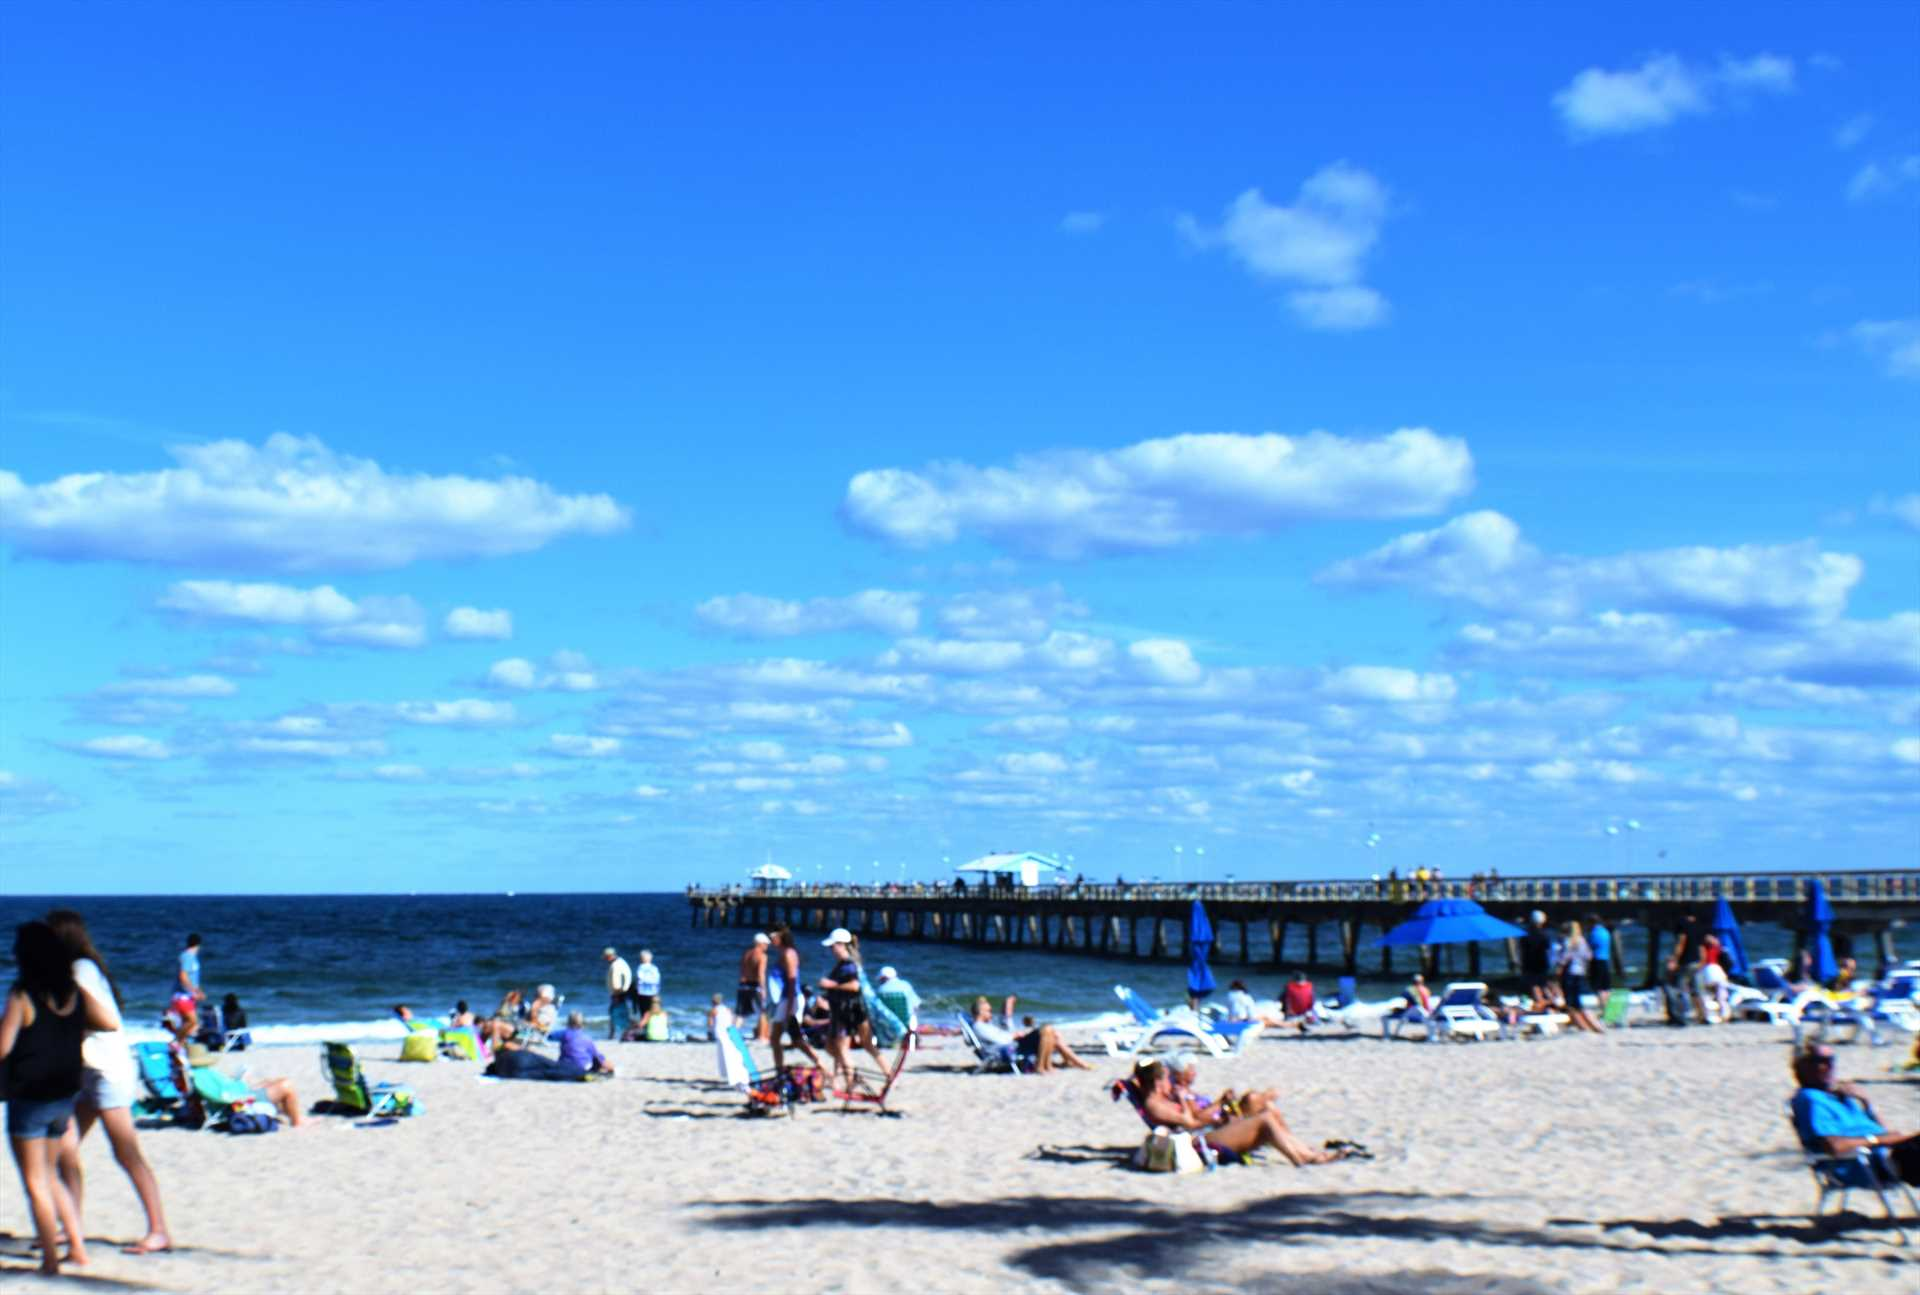 Lauderdale beach is less than a mile away.